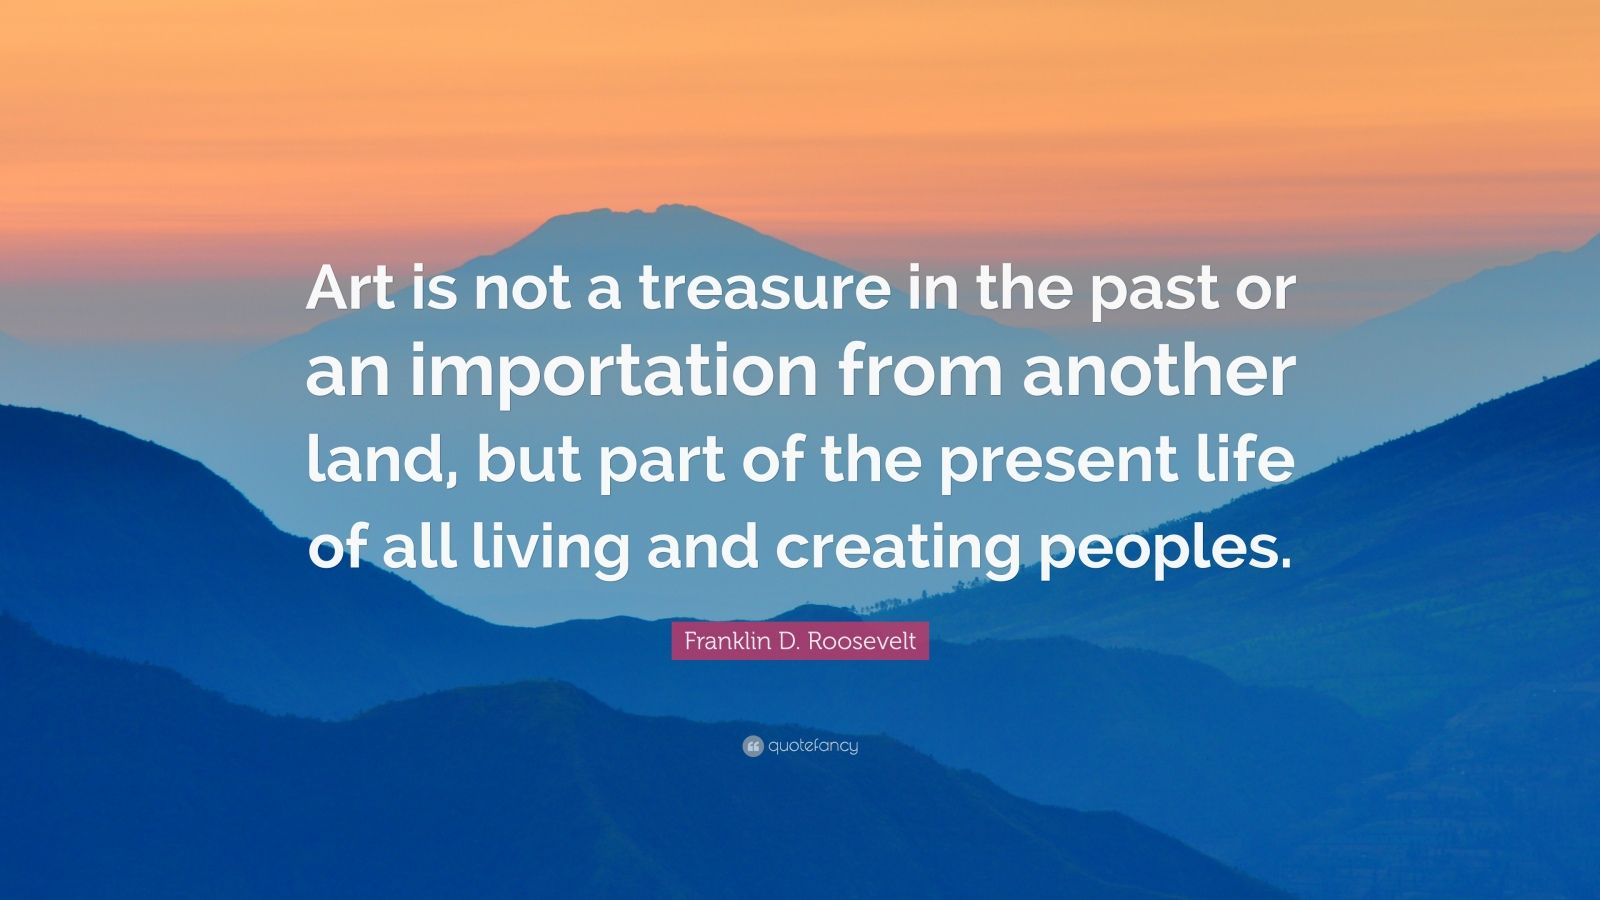 """Franklin D. Roosevelt Quote: """"Art is not a treasure in the past or an importation from another land, but part of the present life of all living and creating peoples."""""""